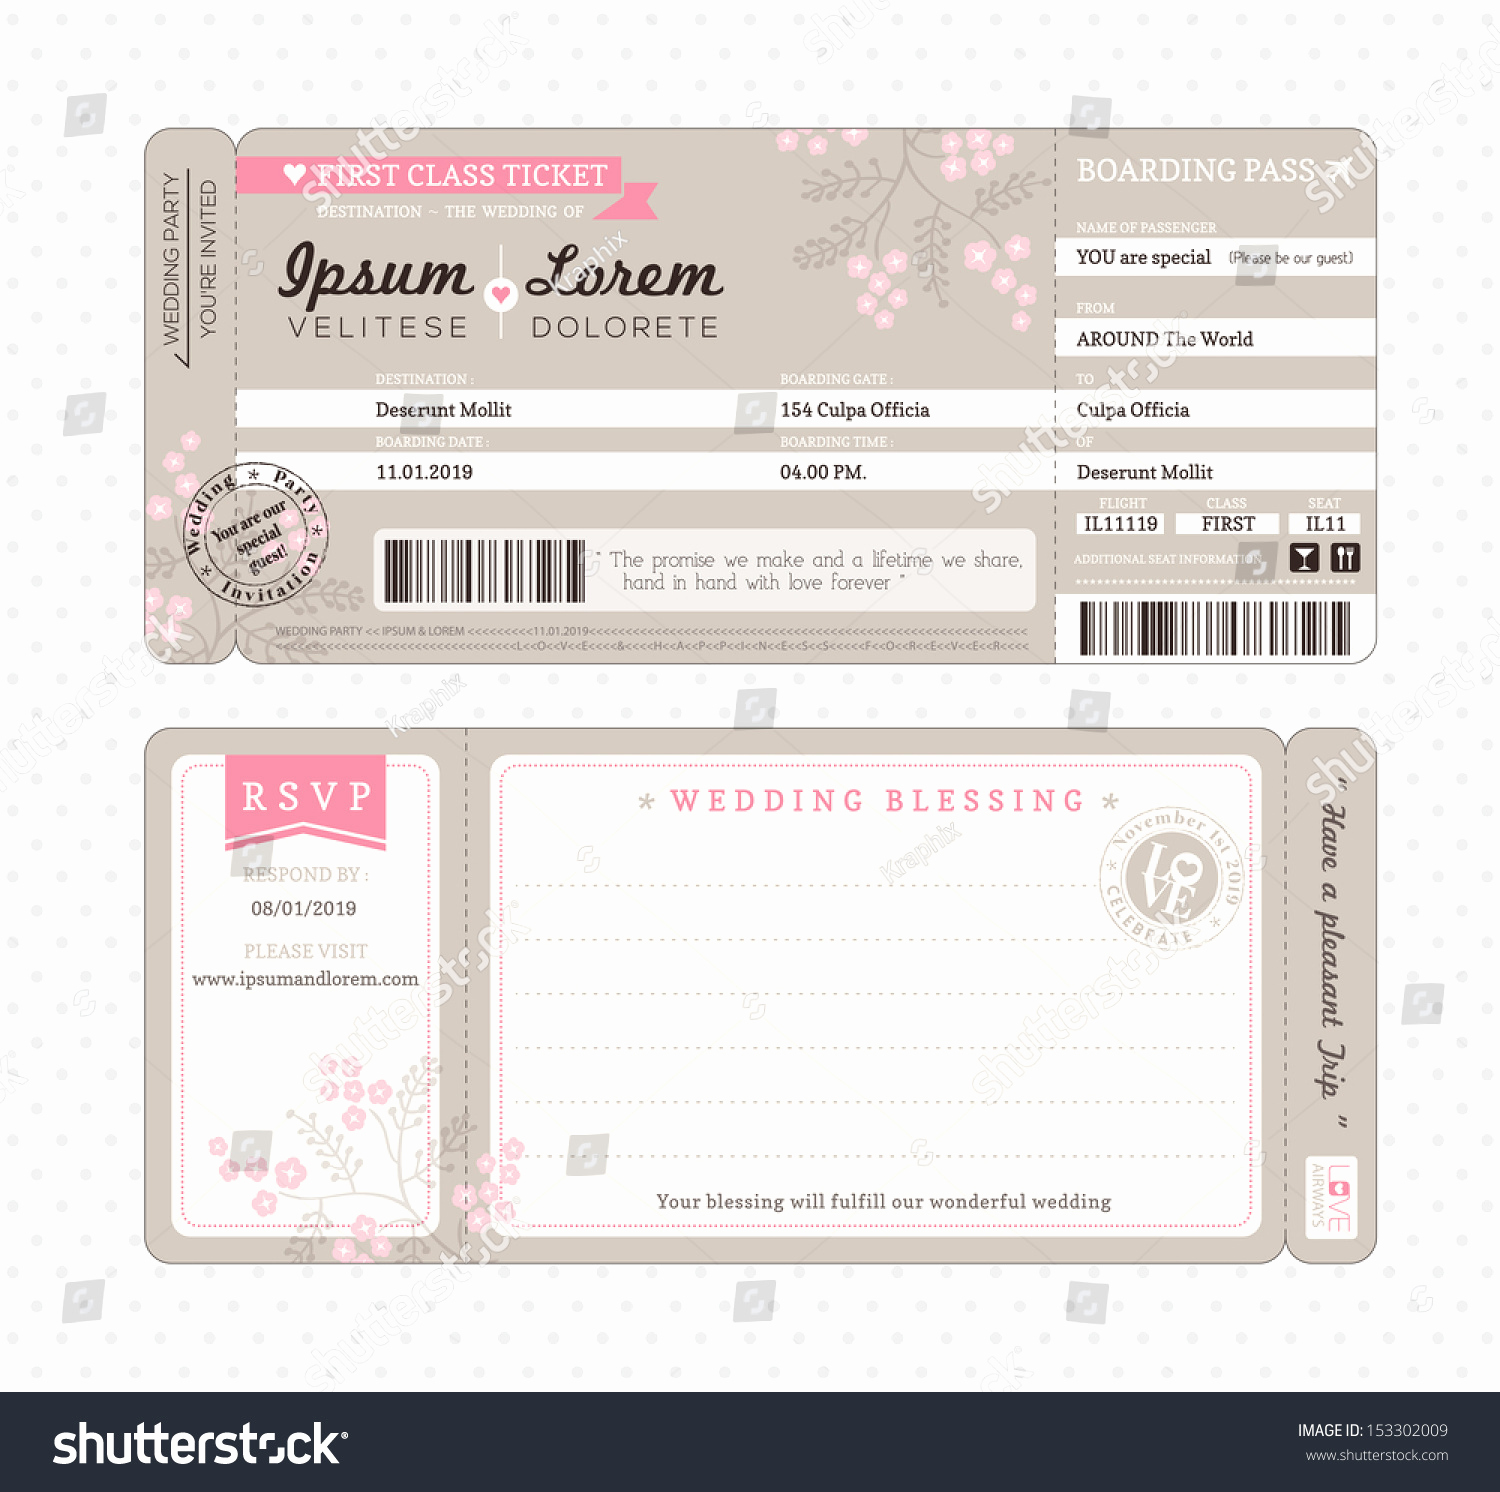 Boarding Pass Invitation Template Free Best Of Boarding Pass Ticket Wedding Invitation Template Stock